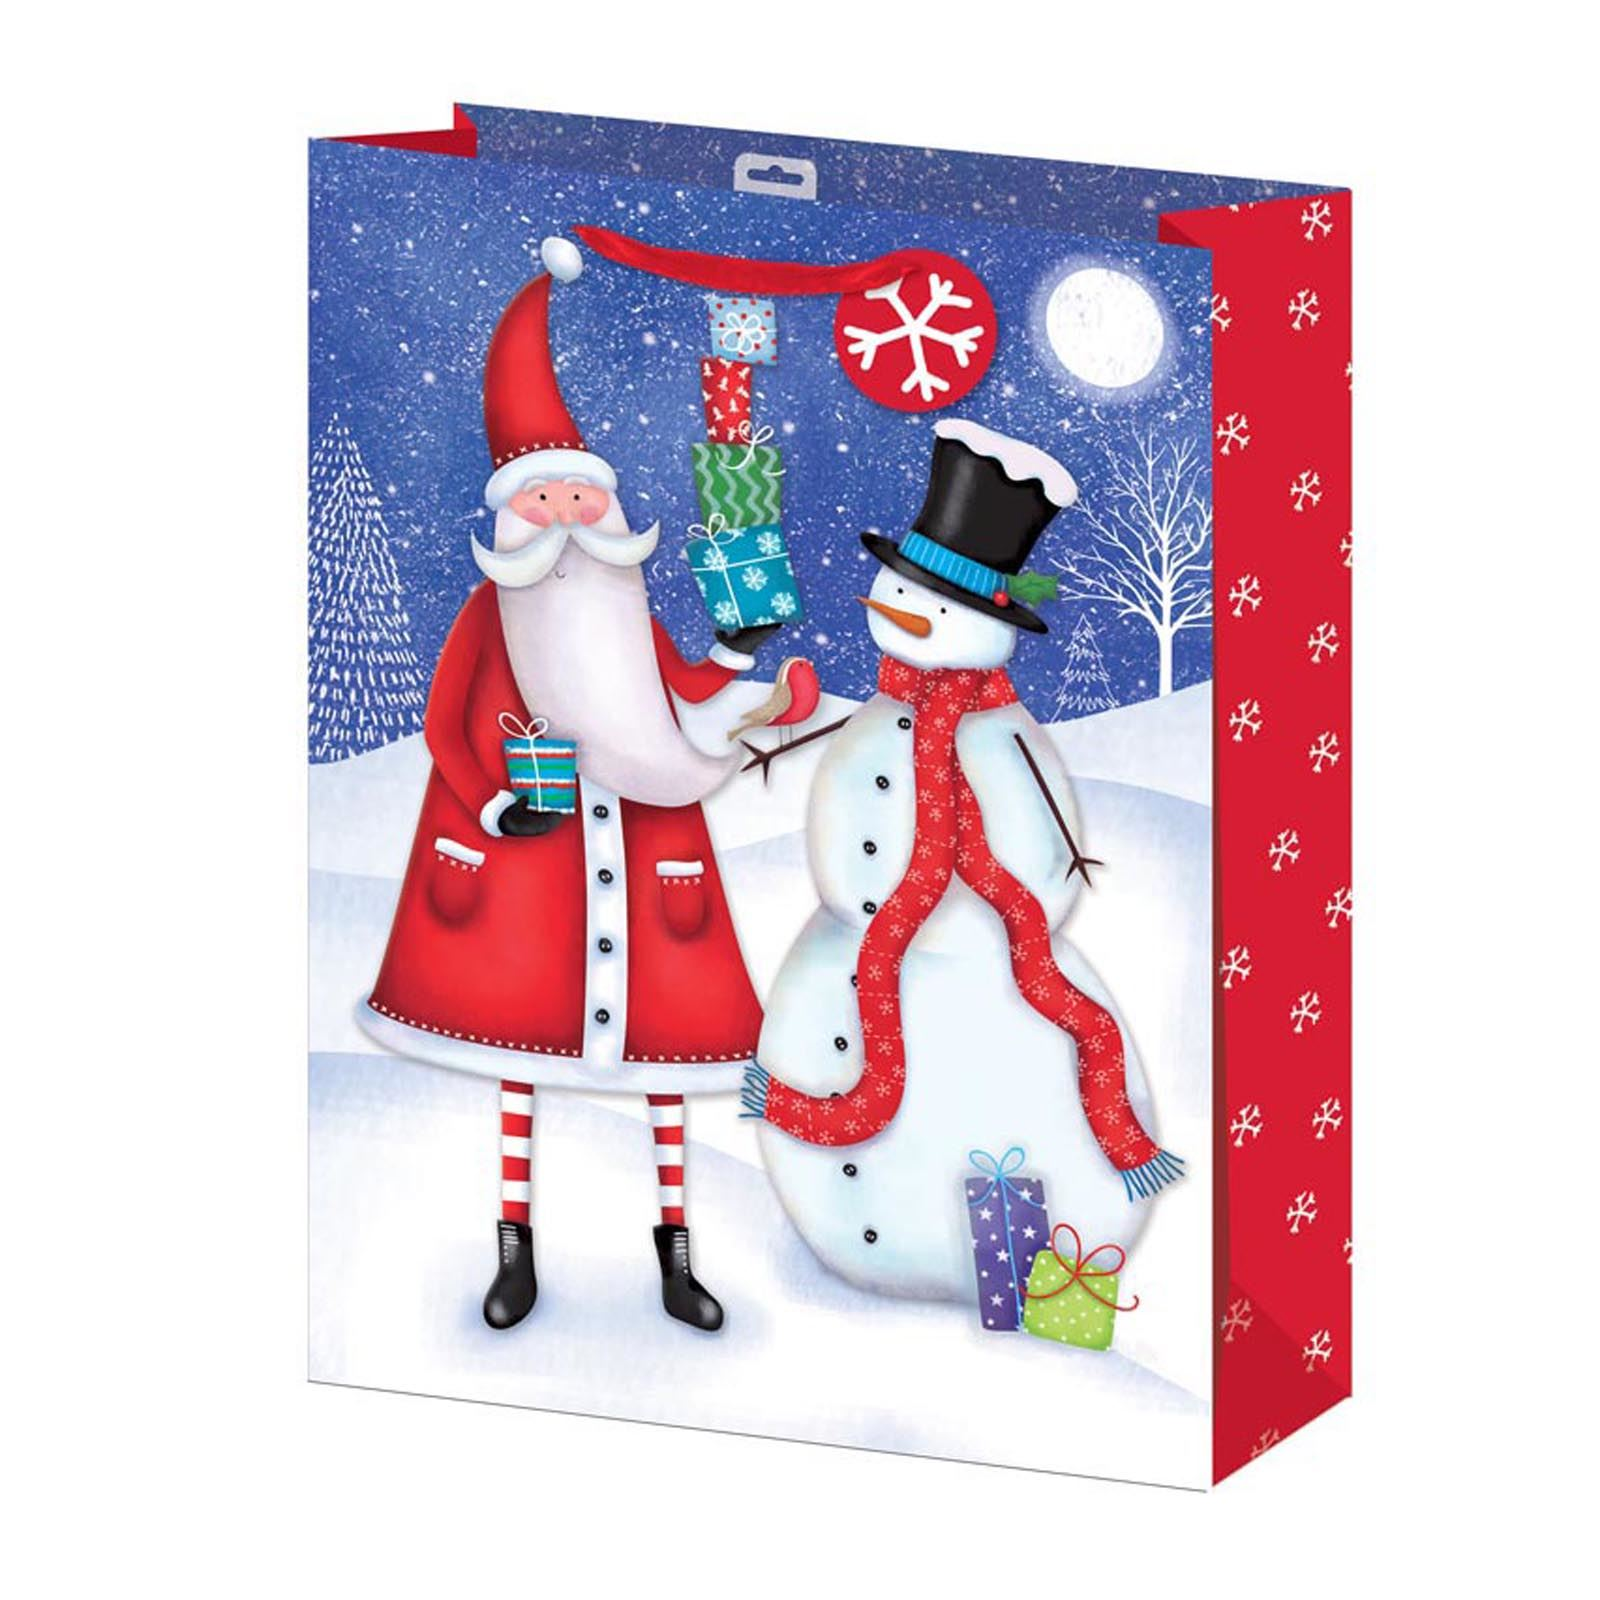 Details about Christmas Gift Wrapping Gift Bag Medium Large Small Santa & Snowman